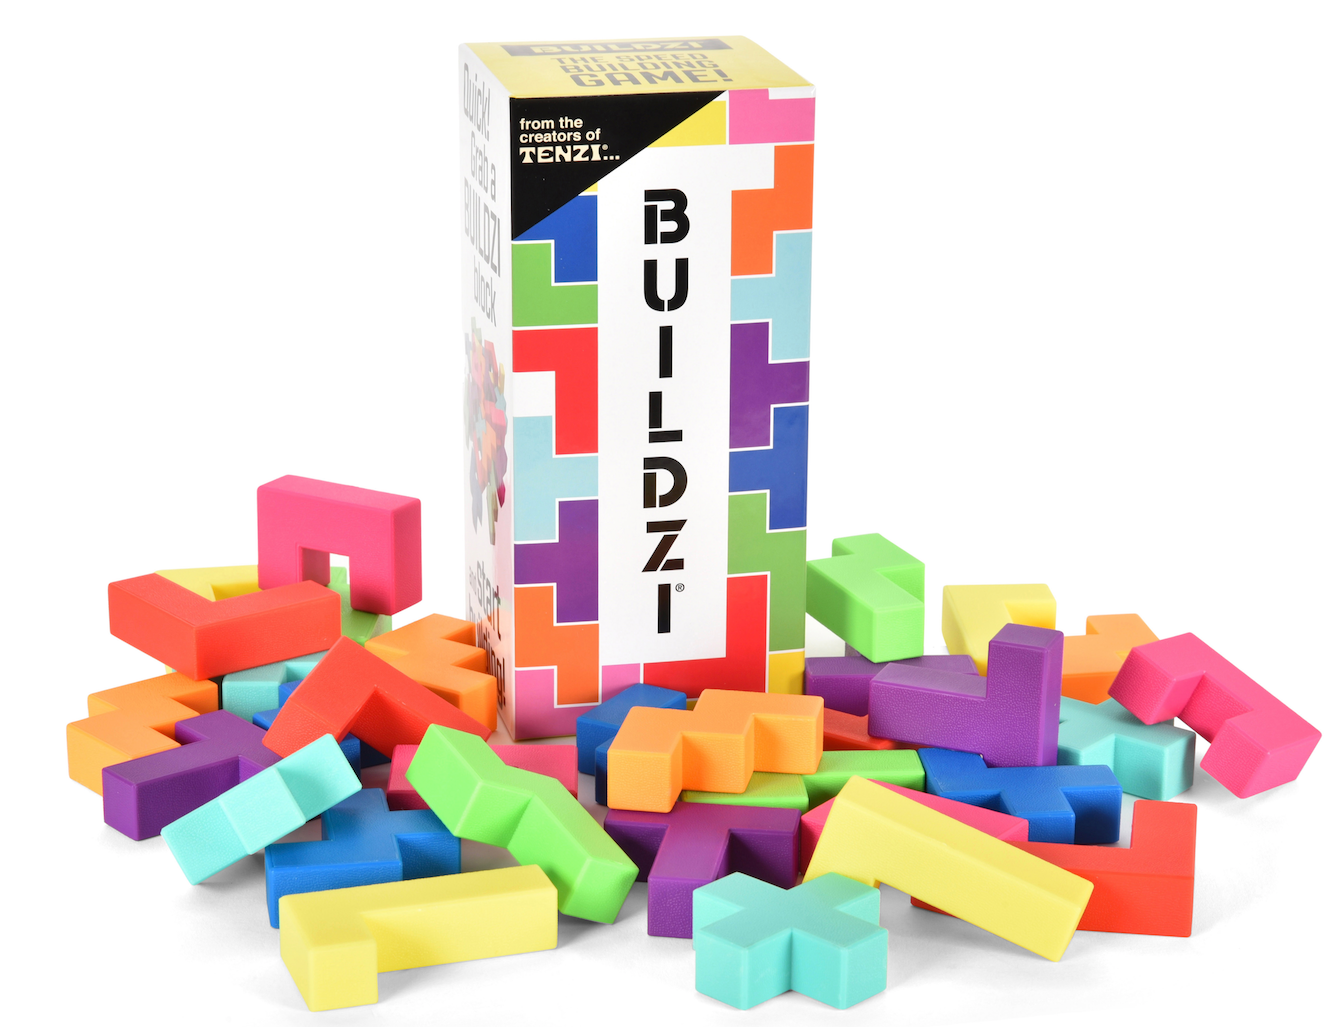 Buildzi - Fast Stacking Game